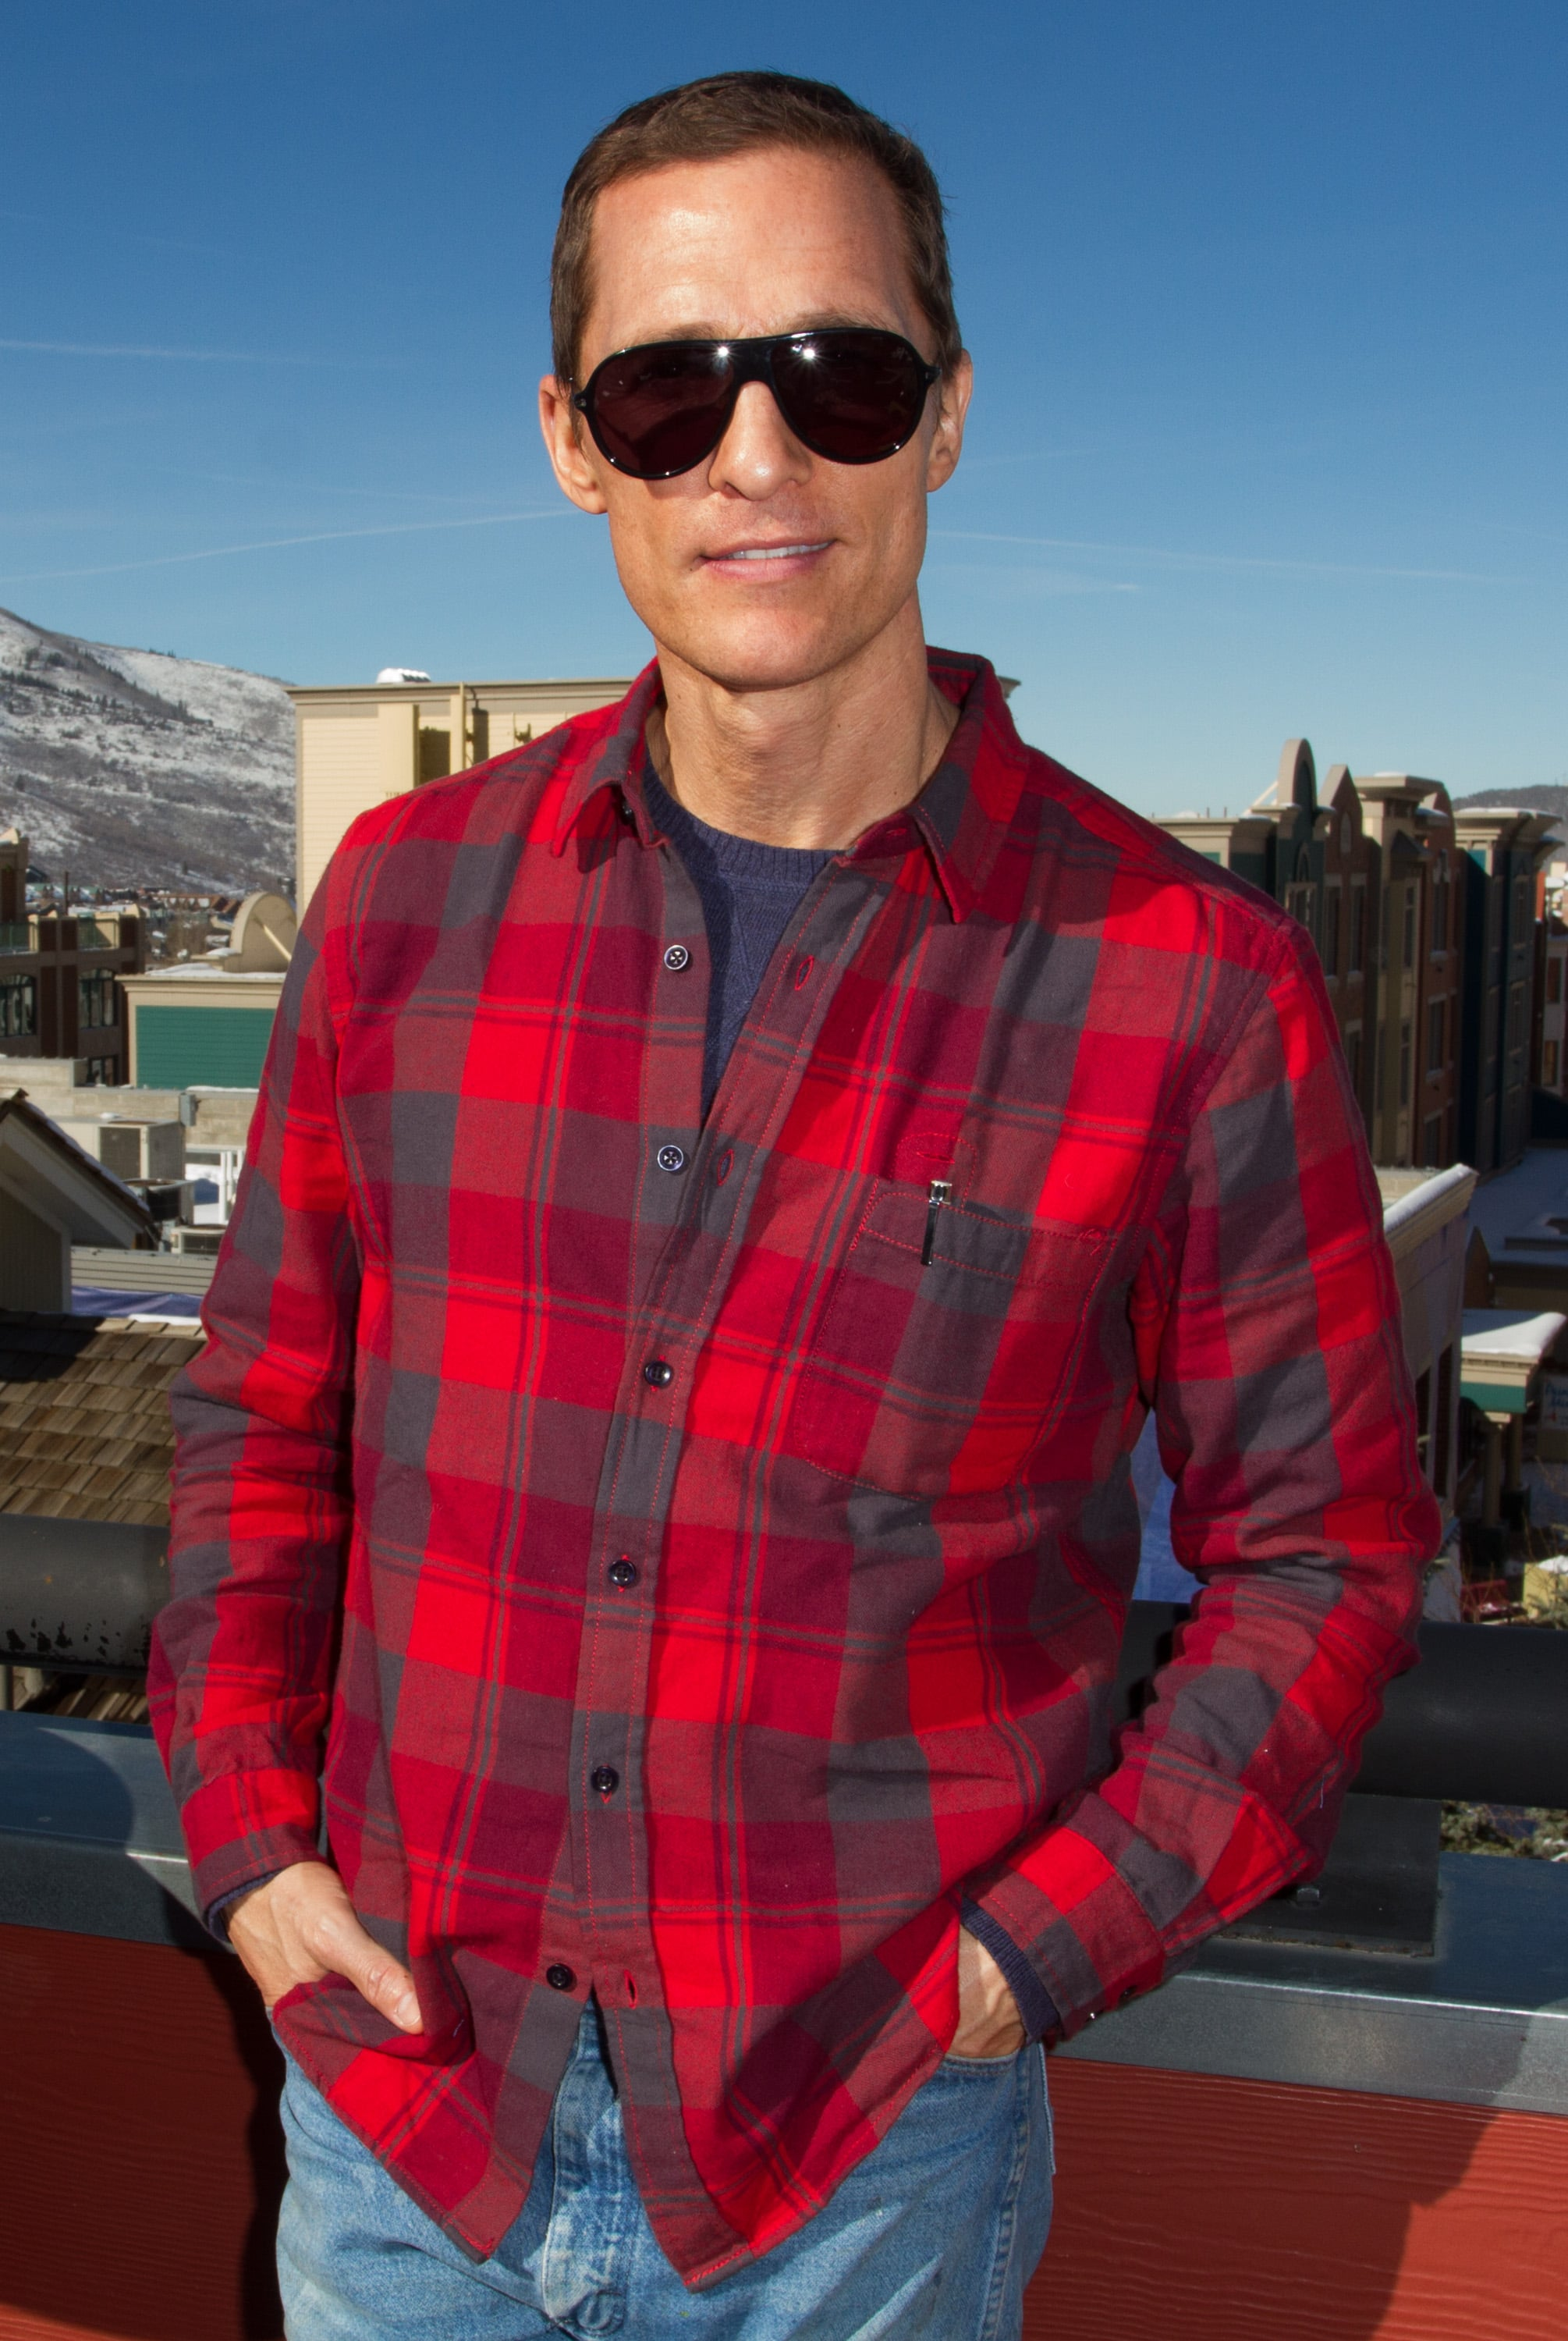 Matthew McConaughey kept his shades on while hanging out at the festival in 2013.